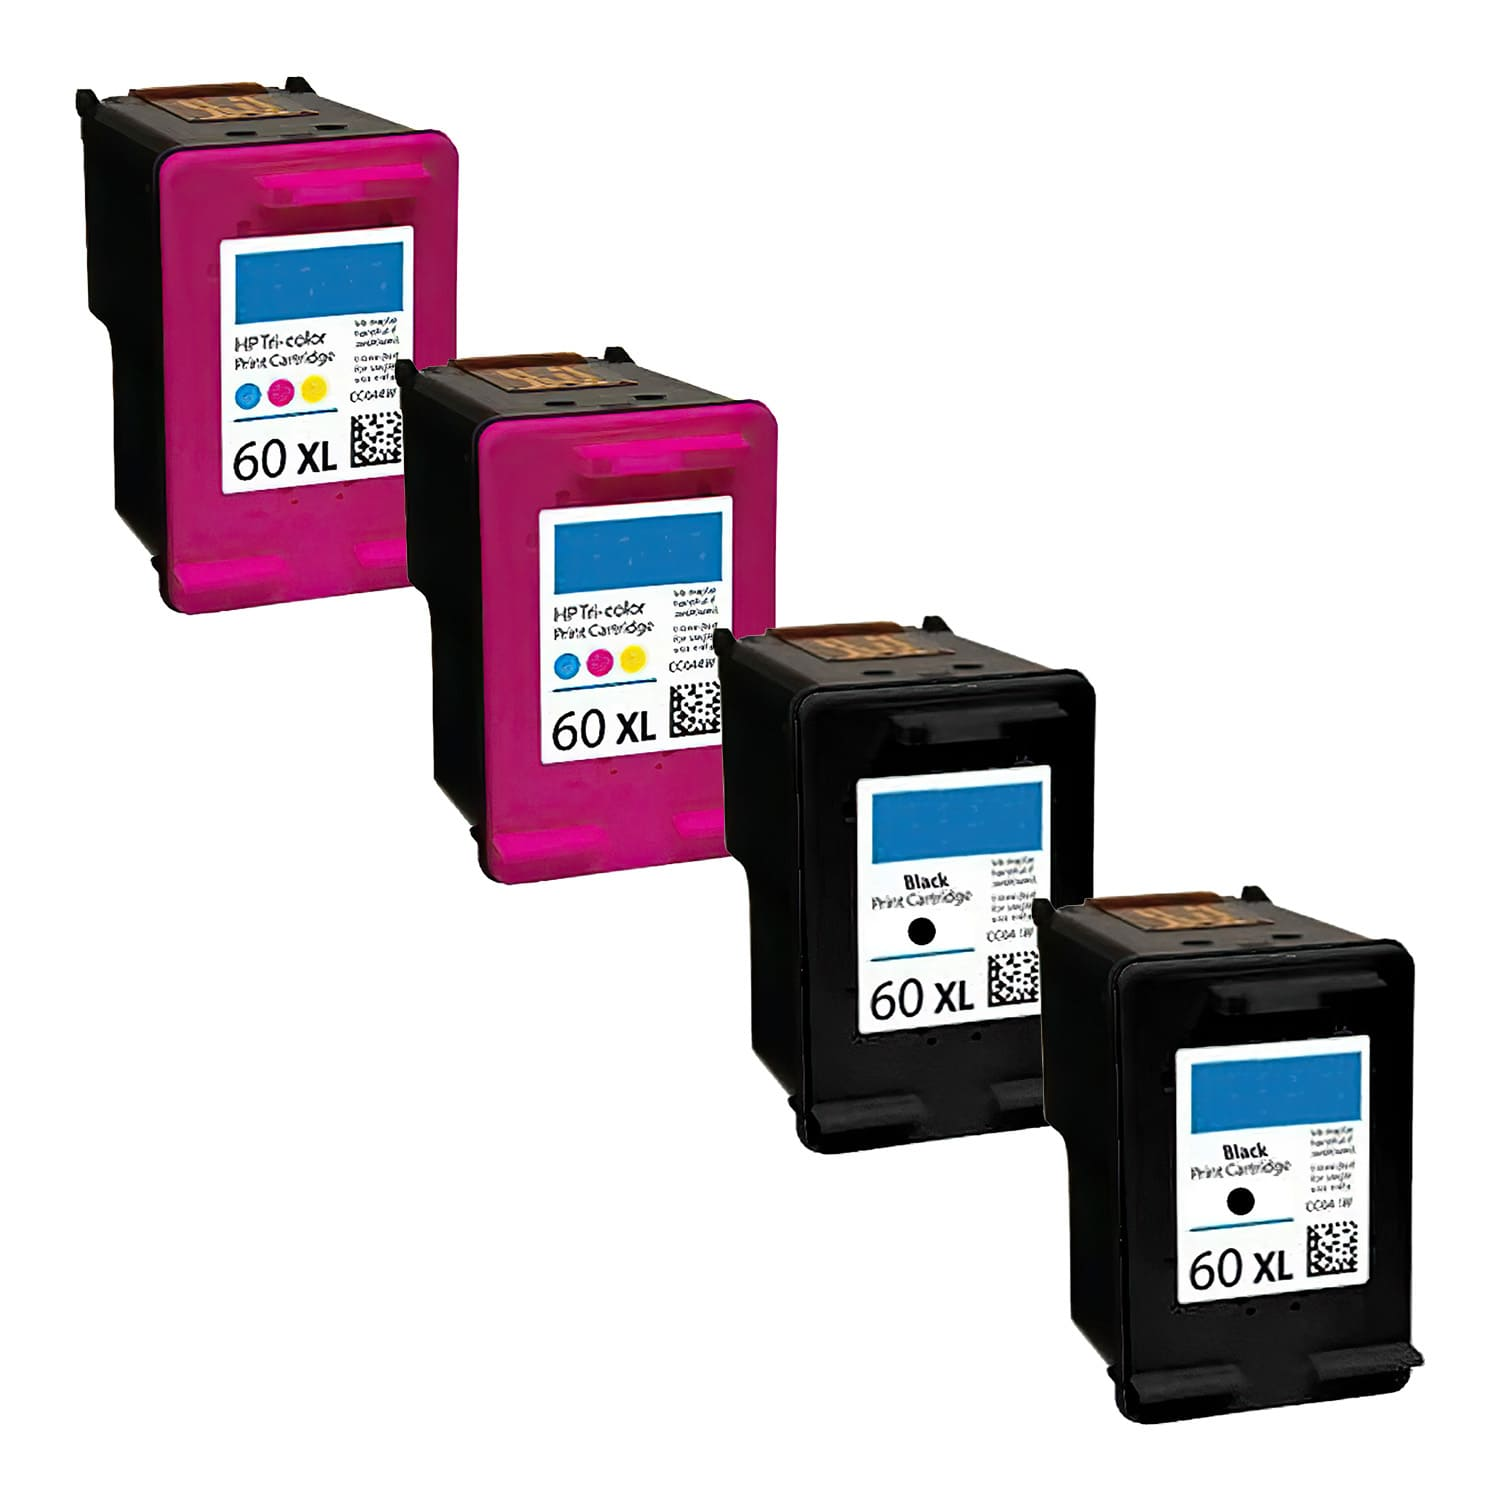 Remanufactured HP 60XL Inkjet High Capacity Pack - 4 Cartridges